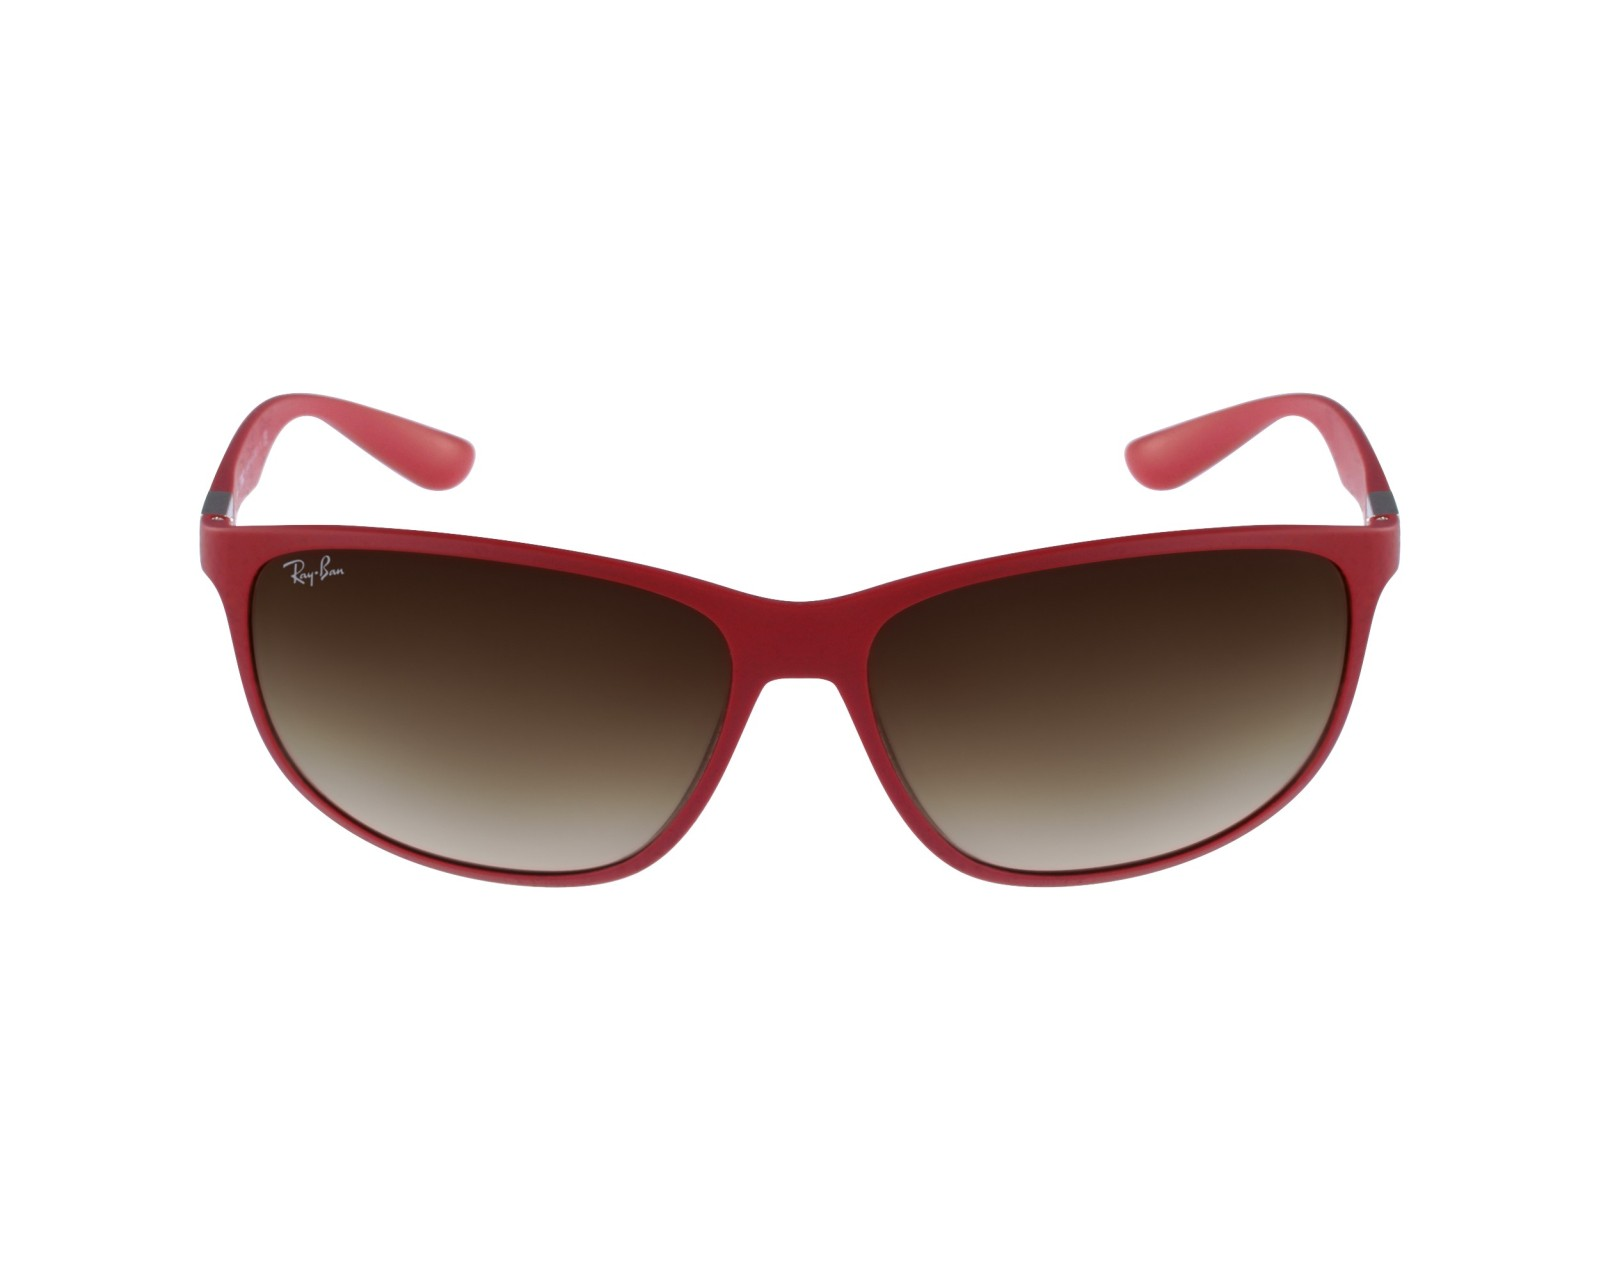 c6db057f2d thumbnail Sunglasses Ray-Ban RB-4213 6123 13 - Red Silver profile view